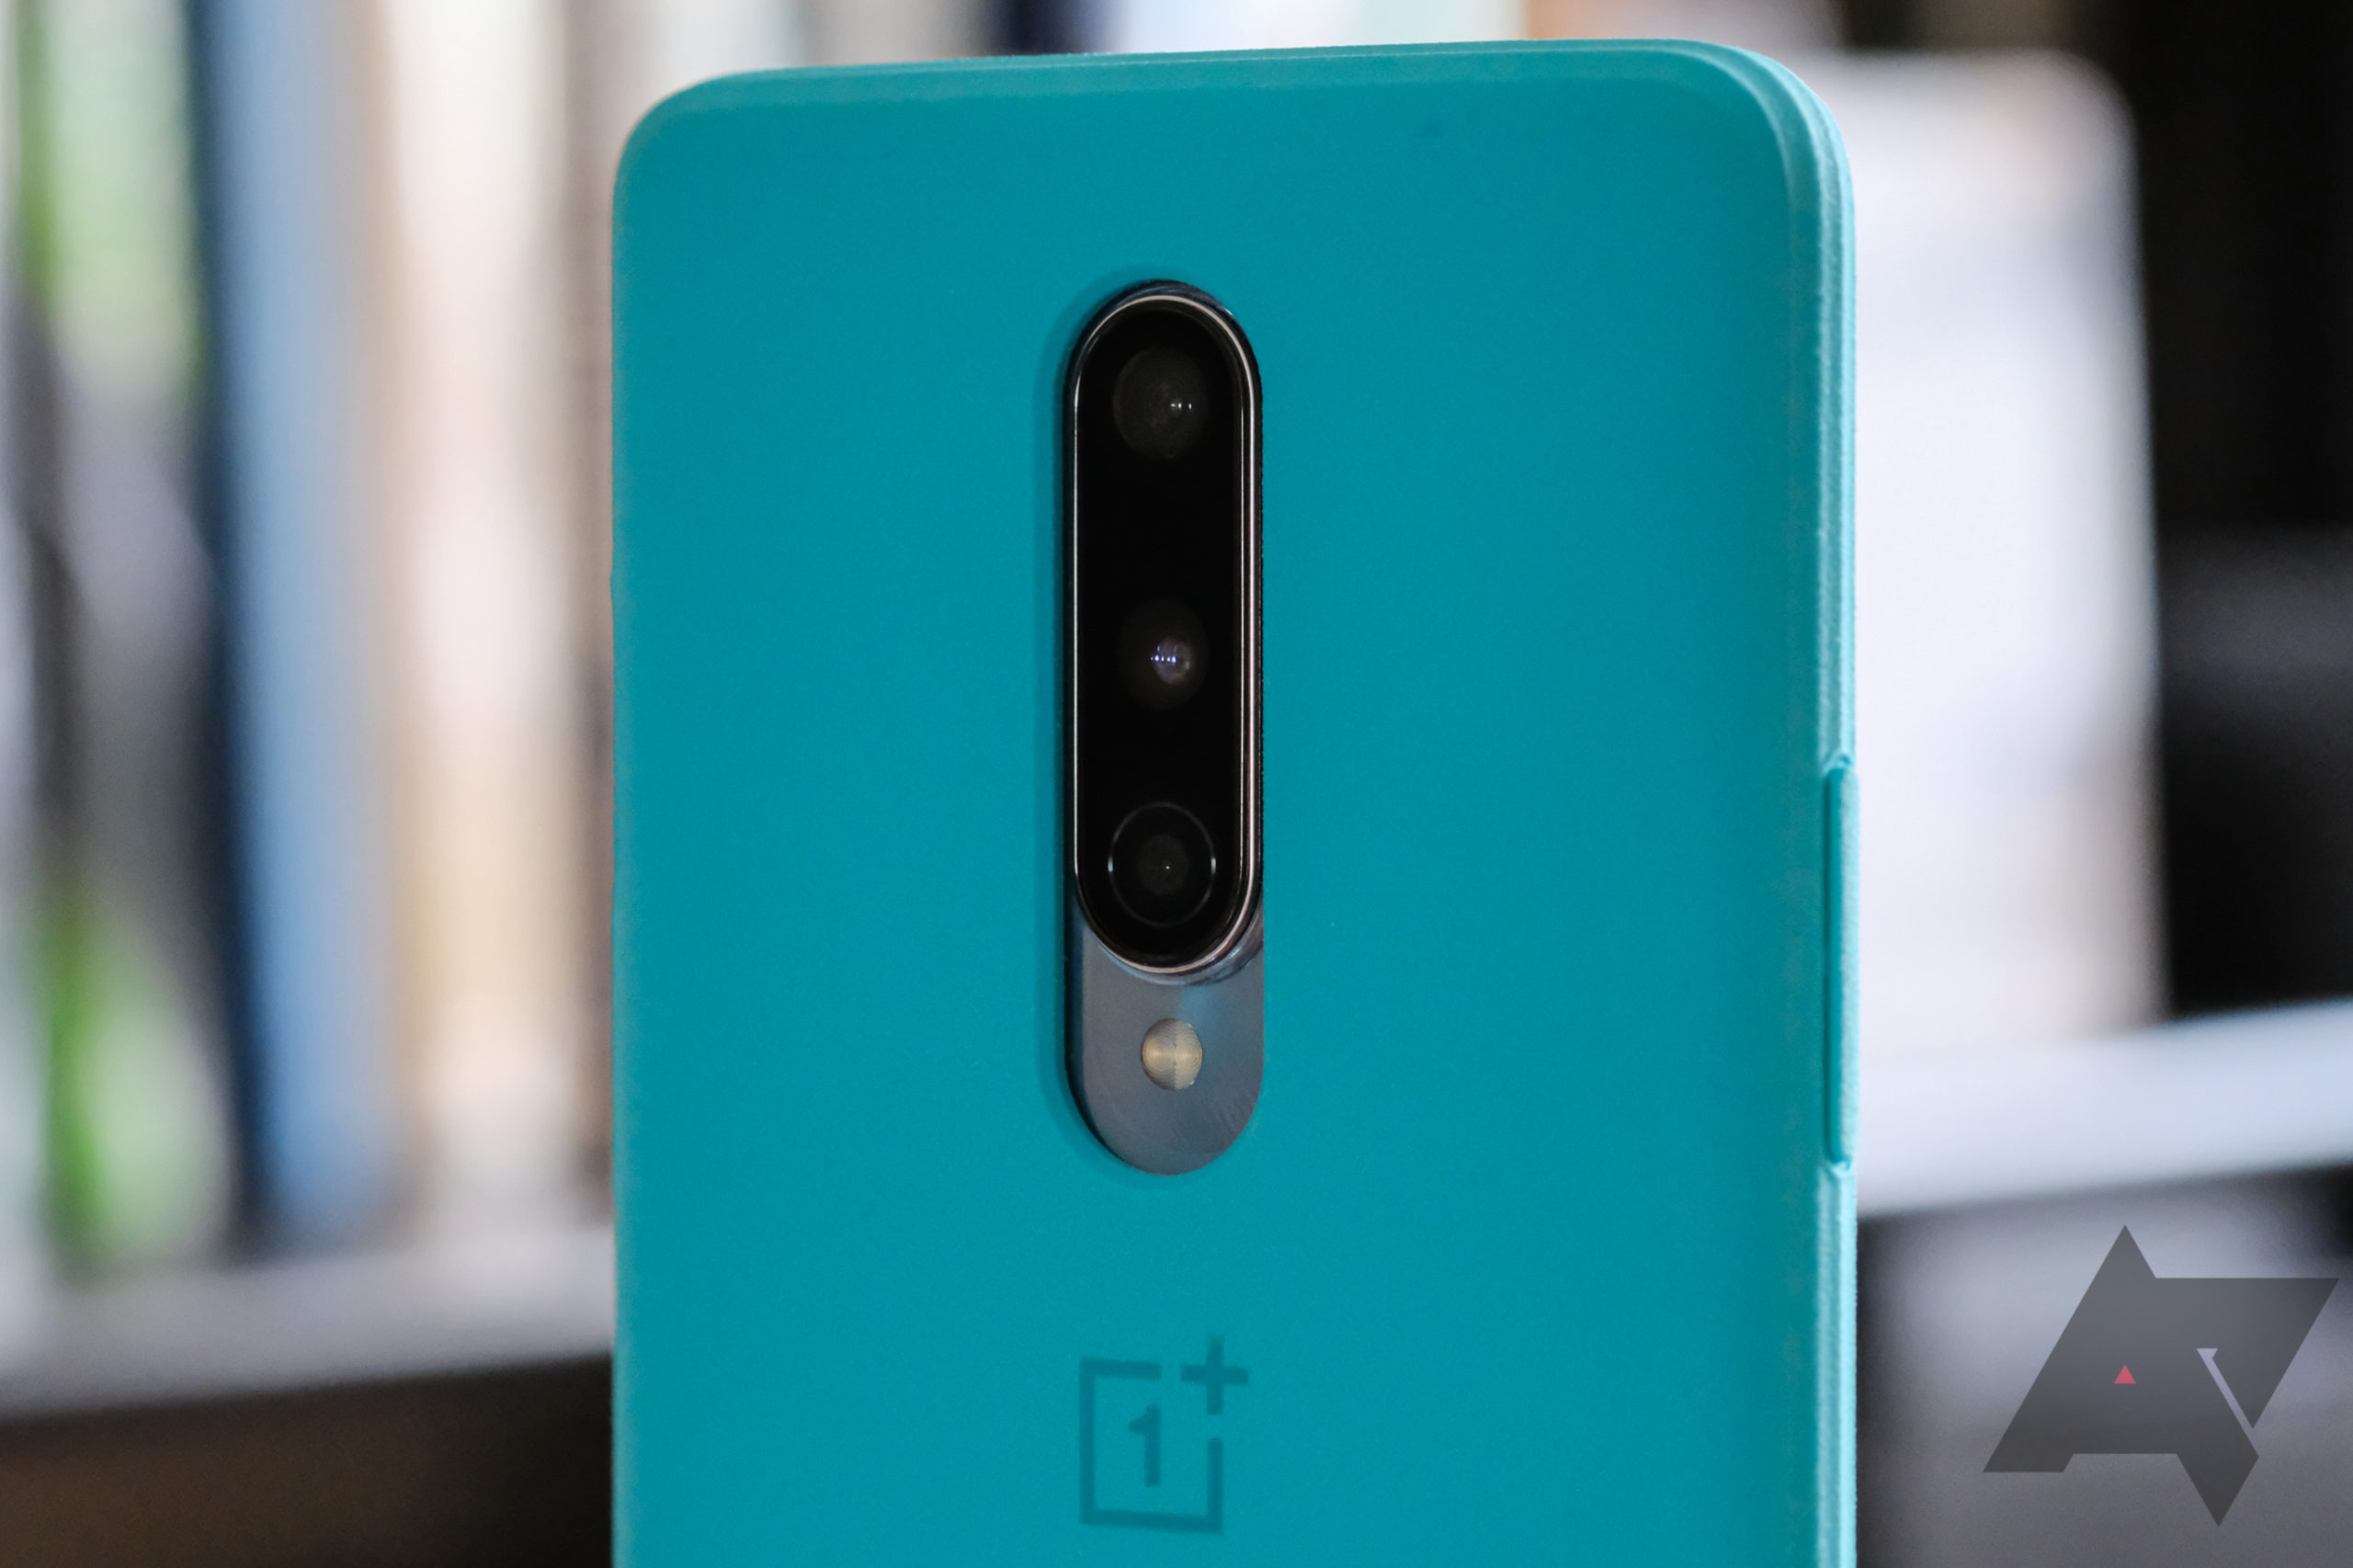 OnePlus 8 for Verizon has a ridiculous flaw